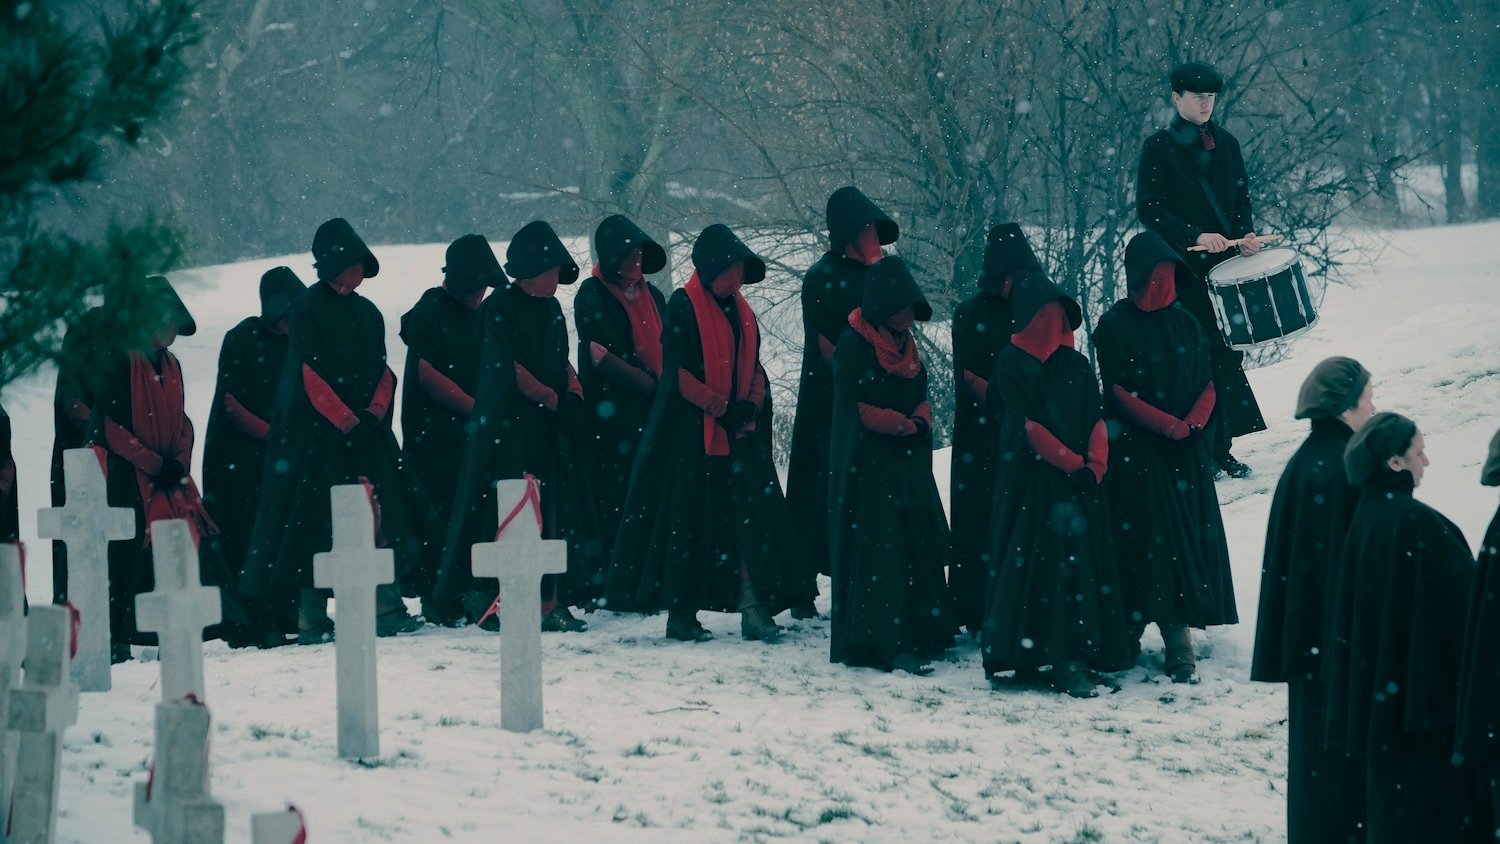 THE HANDMAID'S TALE -- The Emmy-winning drama series returns with a second season shaped by Offredâs pregnancy and her ongoing fight to free her future child from the dystopian horrors of Gilead. âGilead is within youâ is a favorite saying of Aunt Lydia. In Season Two, Offred and all our characters will fight against â or succumb to â this dark truth.(Photo by: Take Five/Hulu)